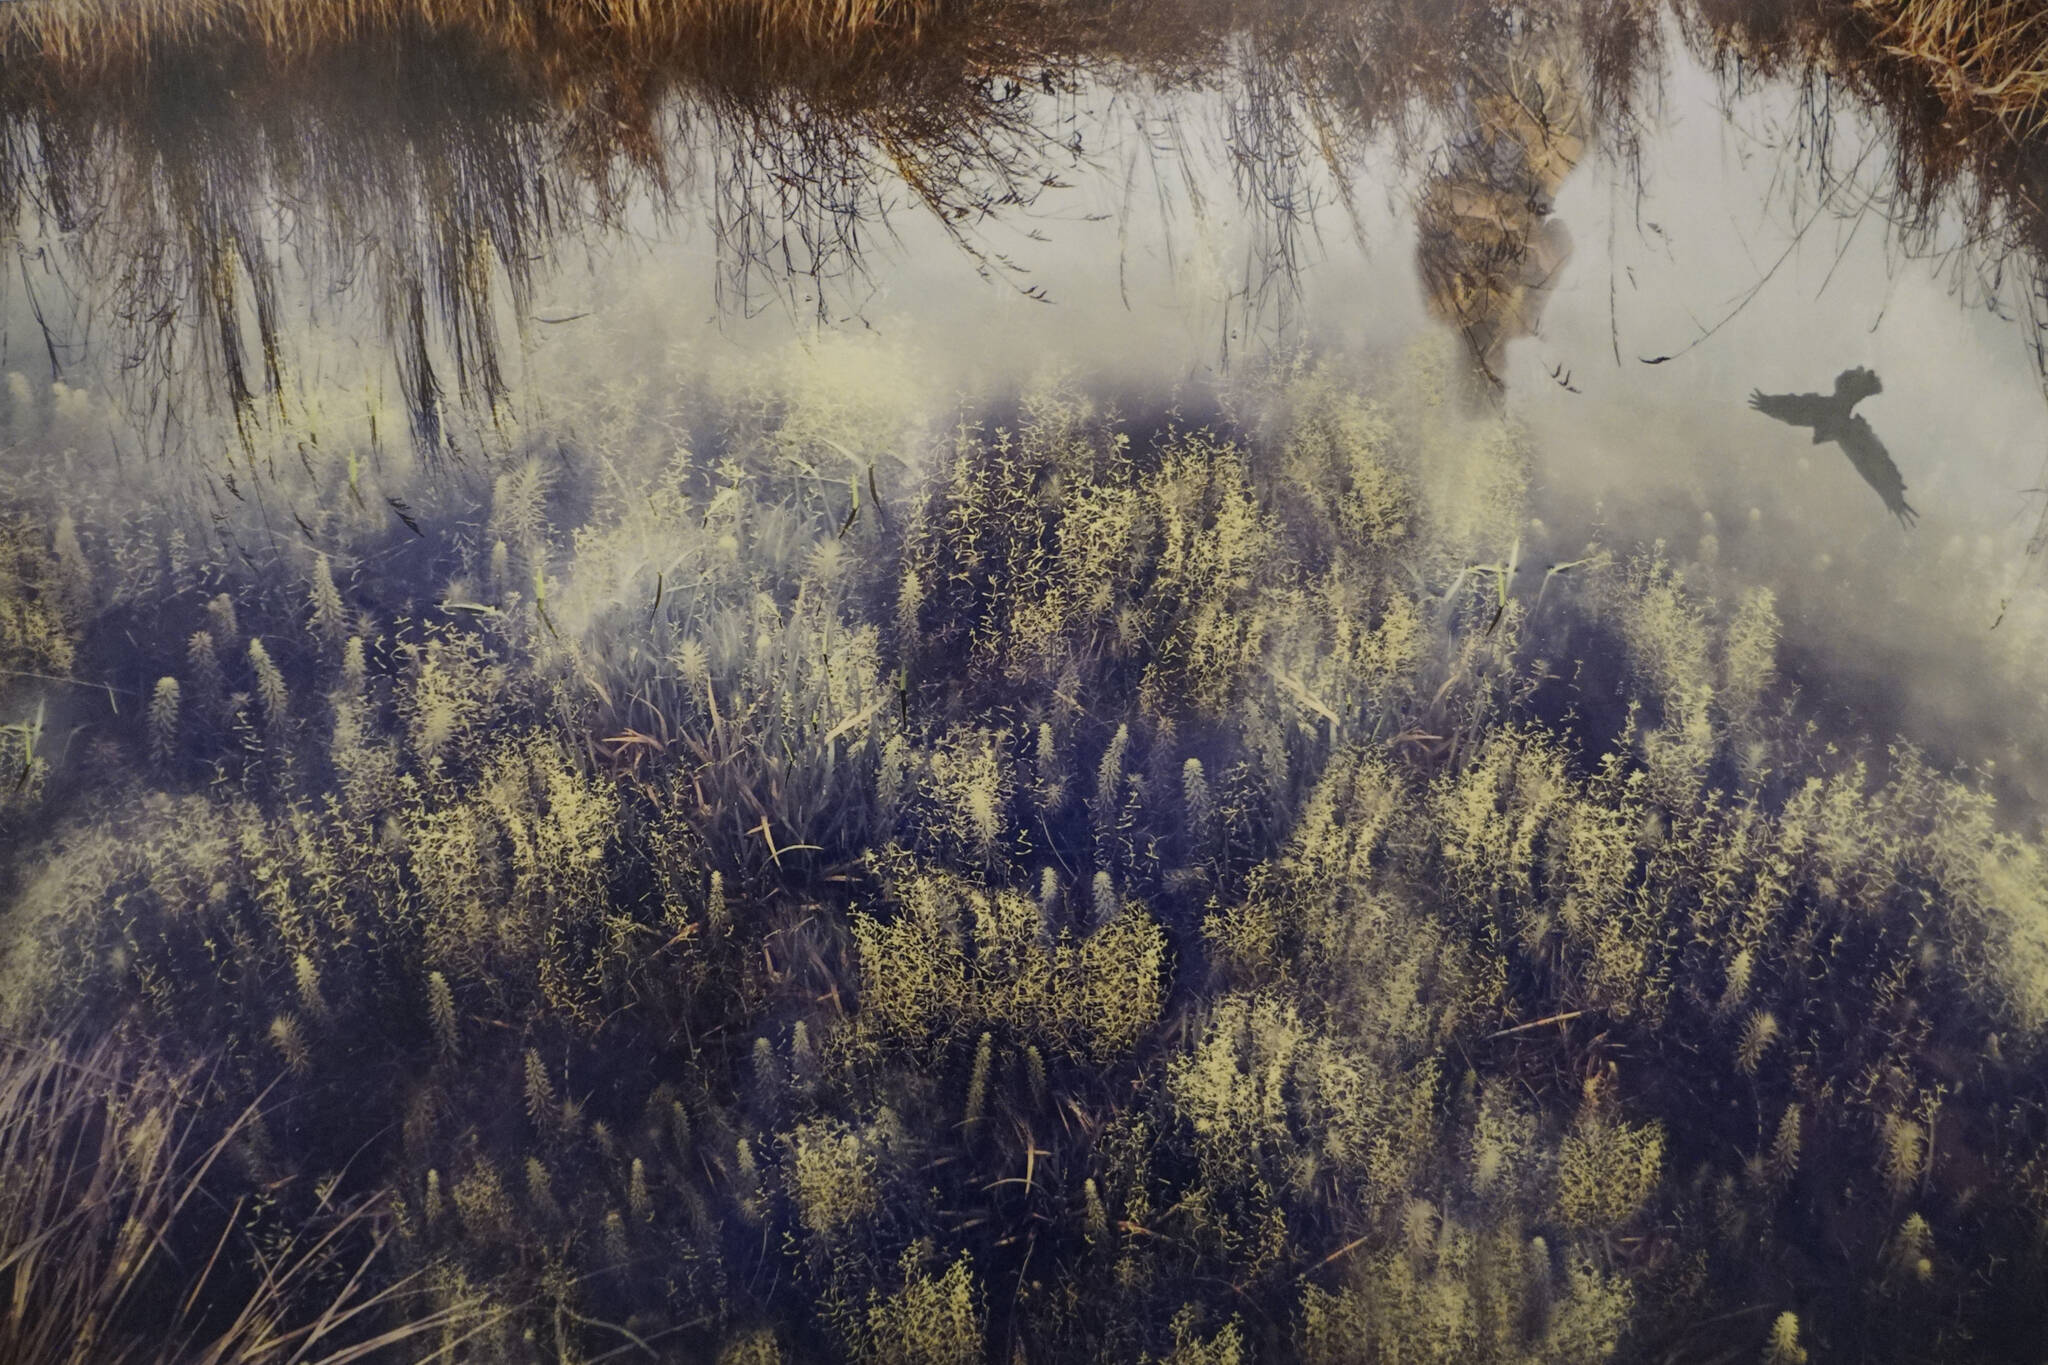 """Kim Terpening's """"Wetands Daydream"""" is part of the Homer Drawdown Peatland exhibit showing at the Pratt Museum & Park through Oct. 10, 2021, in Homer, Alaska. (Photo by Michael Armstrong/Homer News)"""